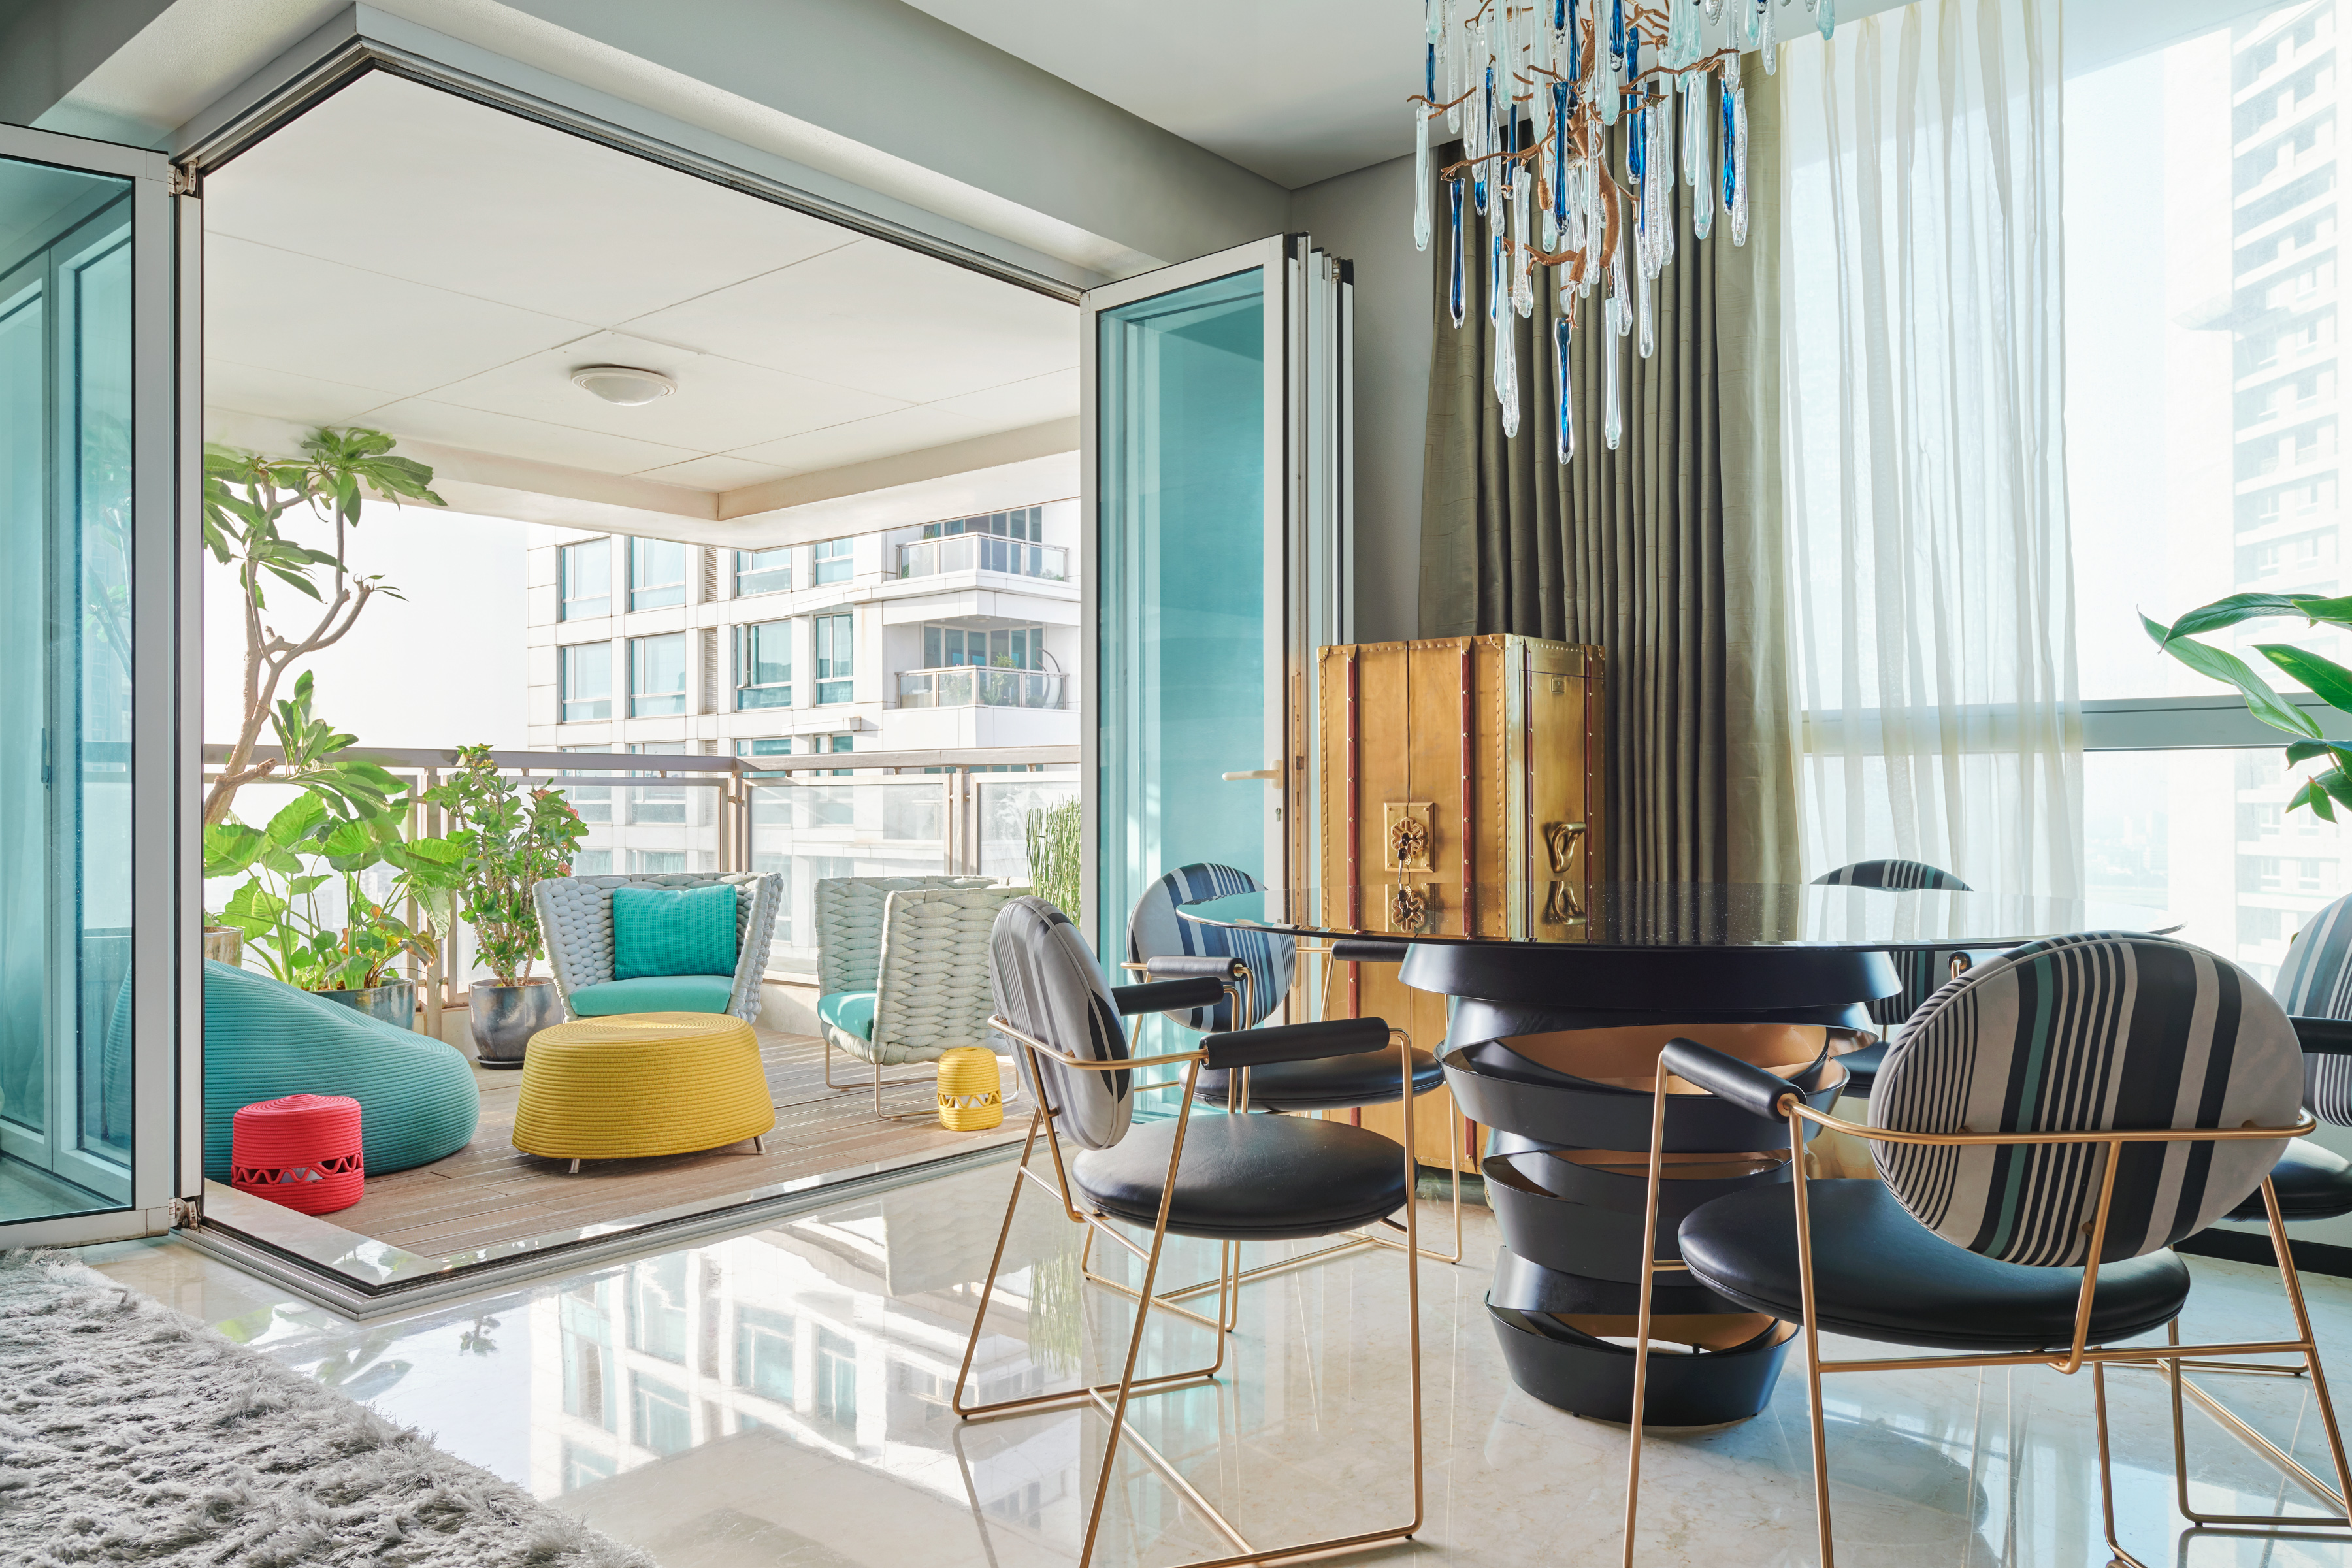 A Luxury Apartment That Magnifies The Exclusive Lifestyle Experience luxury apartment A Luxury Apartment That Magnifies The Exclusive Lifestyle Experience A Luxury Apartment That Magnifies The Exclusive Lifestyle Experience 11